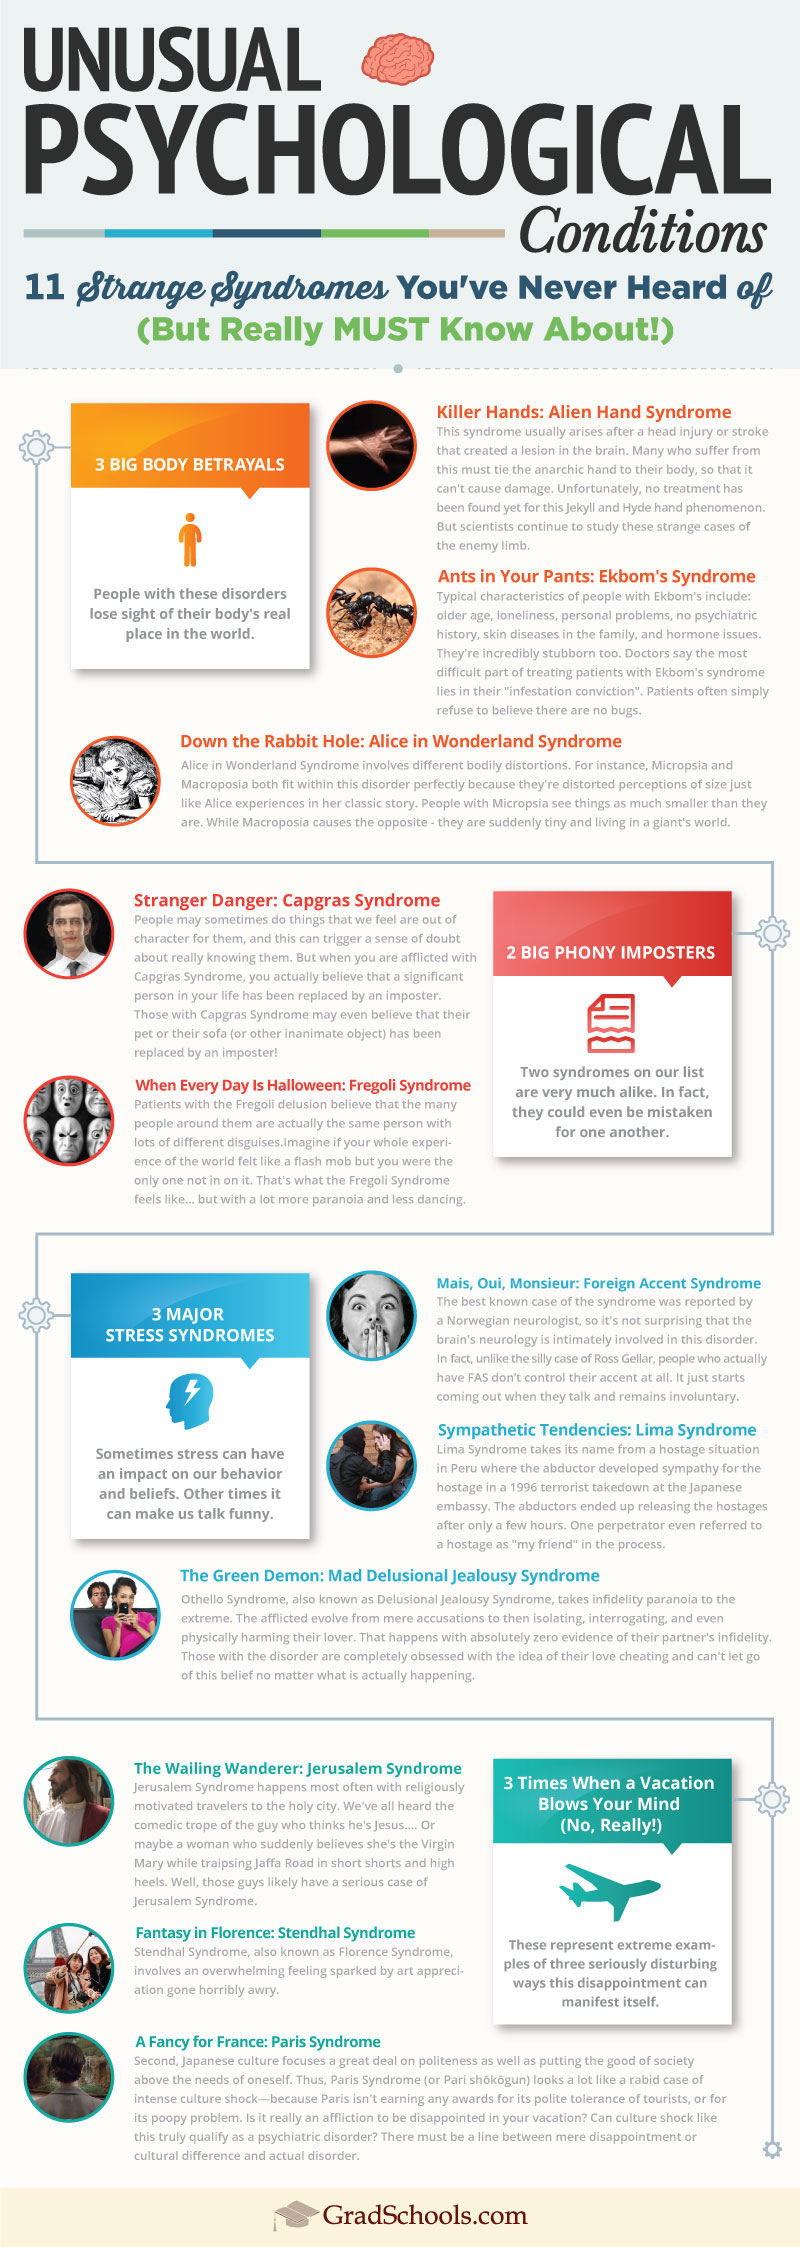 11 Lesser-Known Psychological Disorders - Infographic